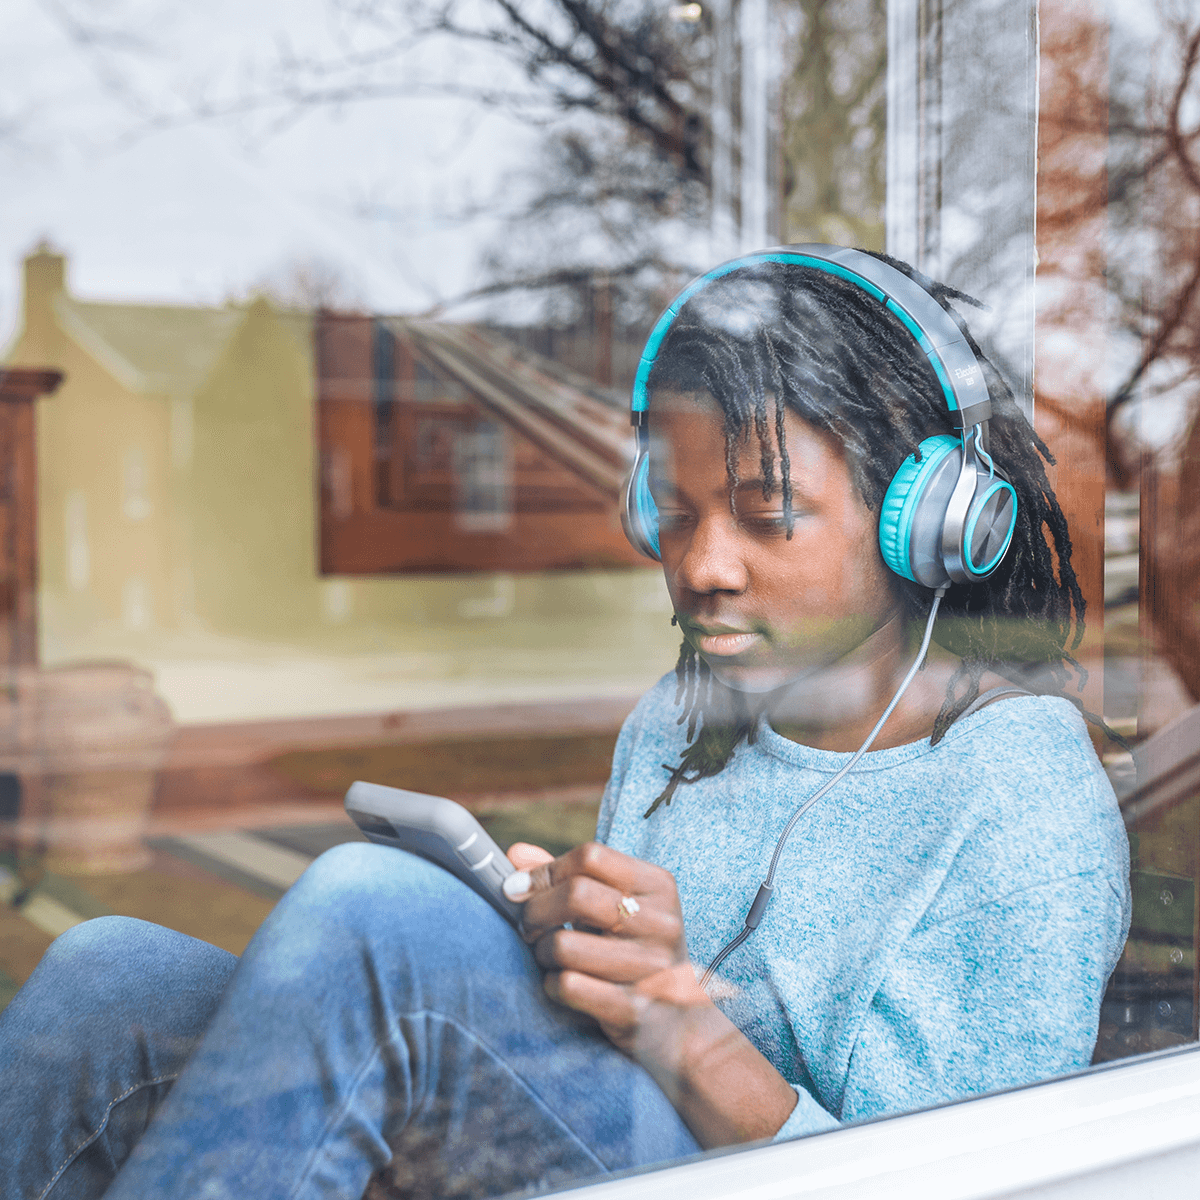 A young teenage boy listening to music on his mobile phone